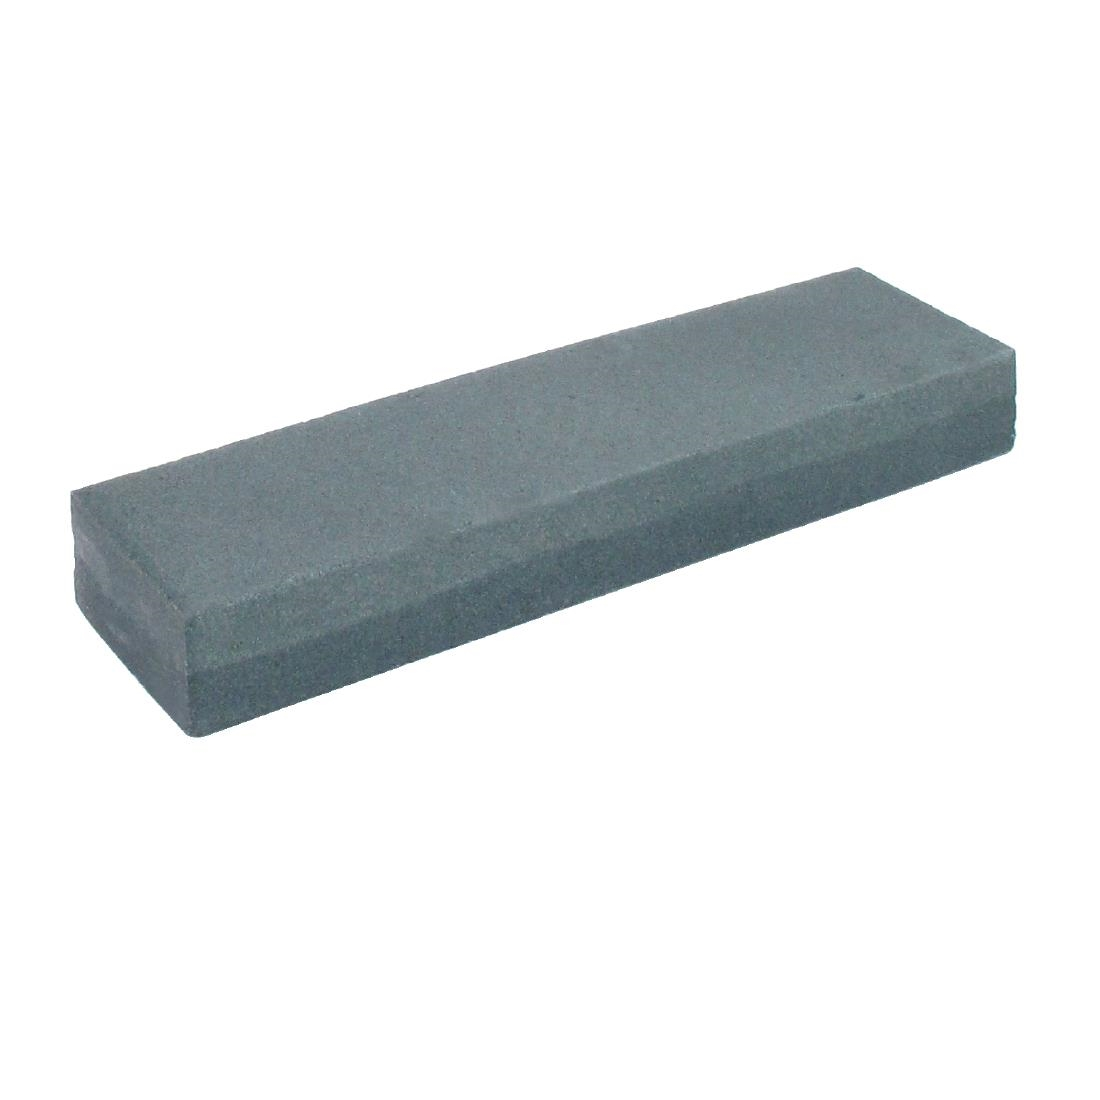 kitchen knife sharpening stone padded mats vogue d139 buy online at nisbets